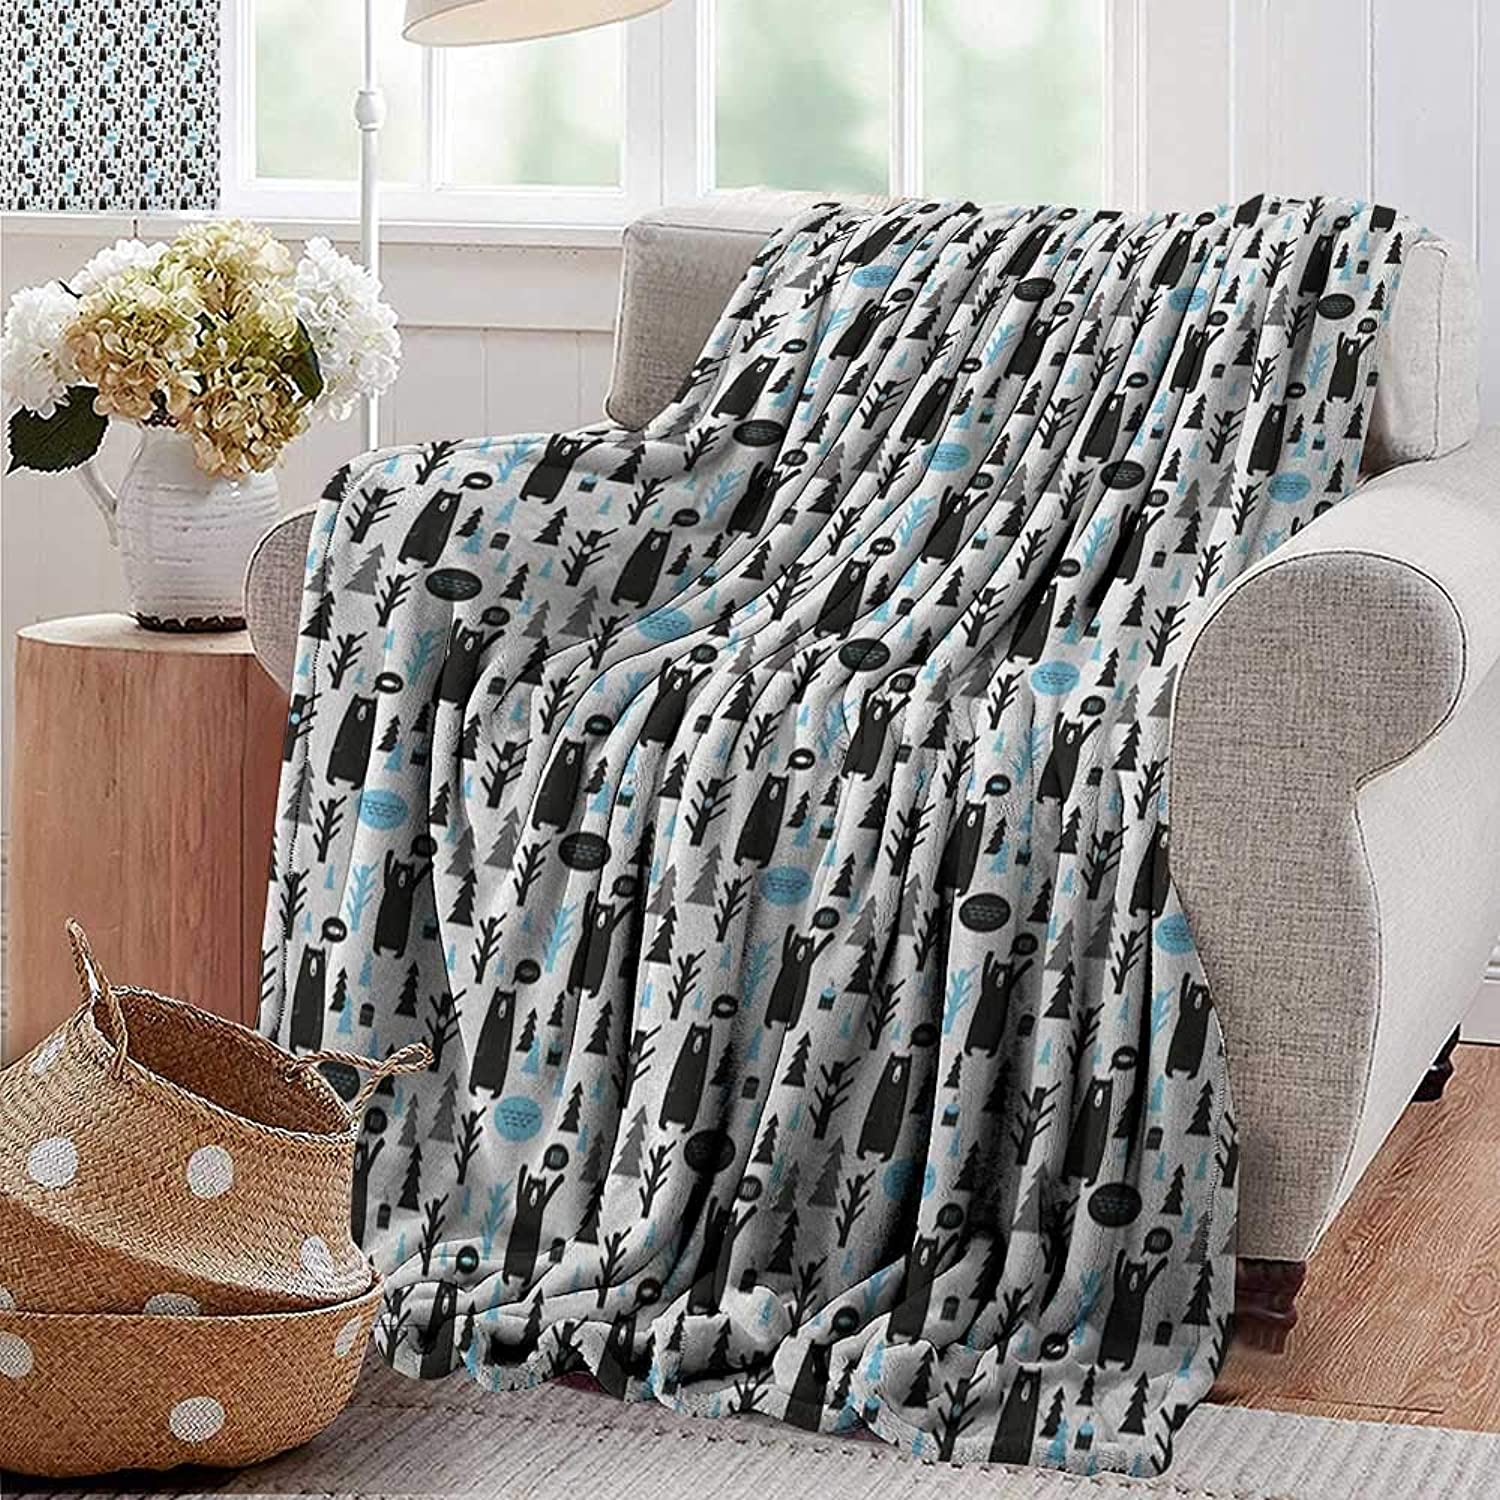 Ultra Soft Flannel Blanket,Bear,Modern Joyful Cartoon Style Pattern with Forest Animals and Christmas Trees, Pale bluee Black White,Lightweight Microfiber,All Season for Couch or Bed 50 x60